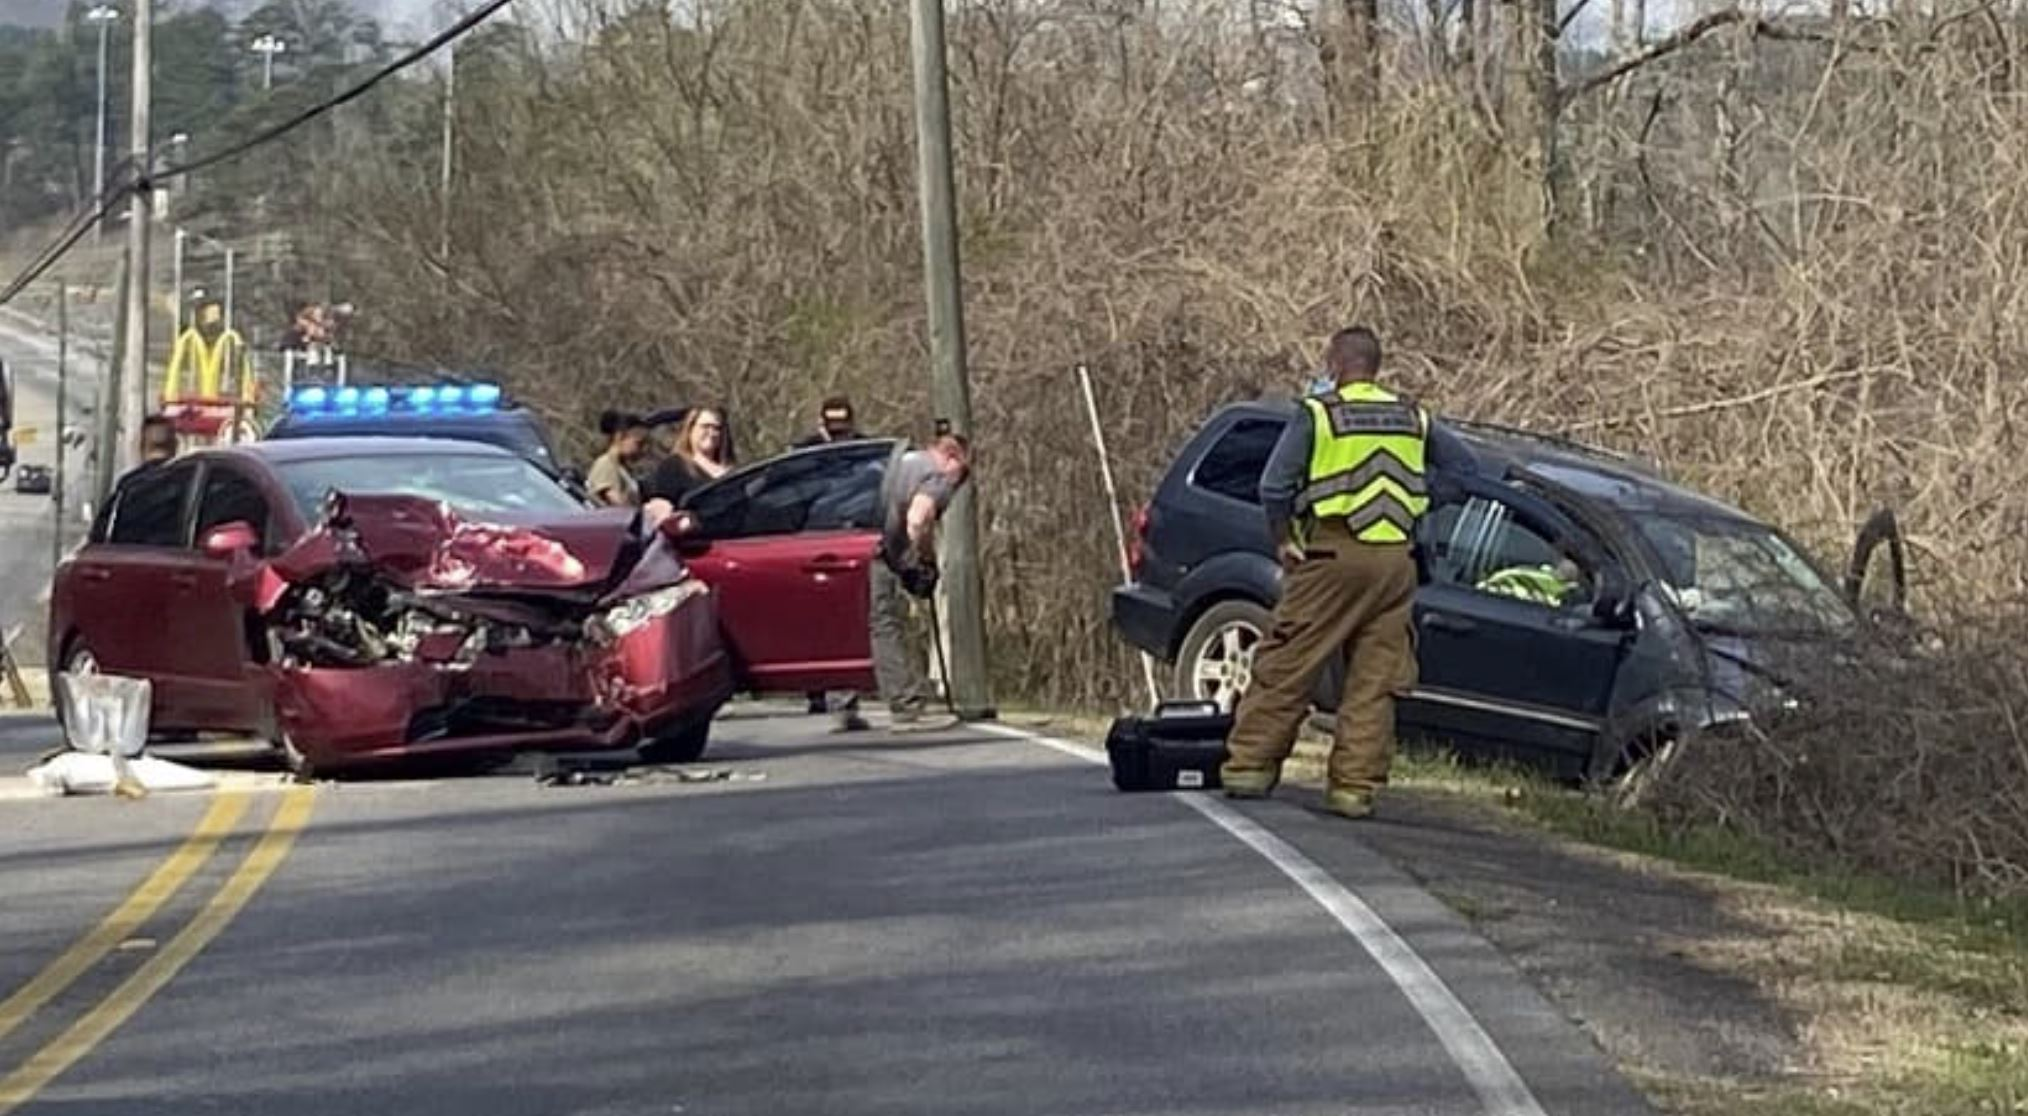 BREAKING: North Chalkville Road closed after head-on collision in Trussville